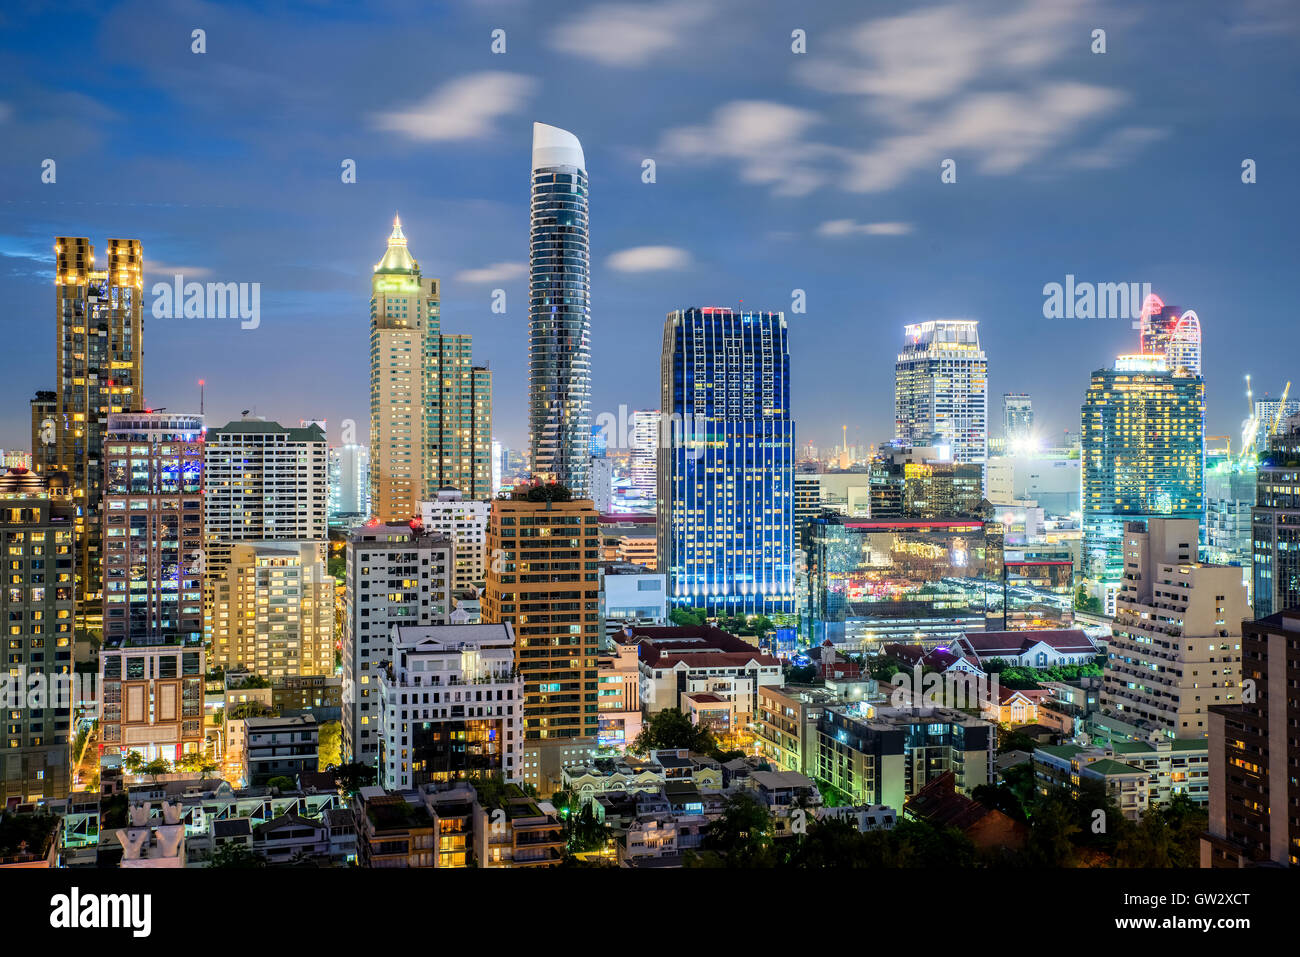 Bangkok city skyline et gratte-ciel de nuit à Bangkok, Thaïlande Photo Stock